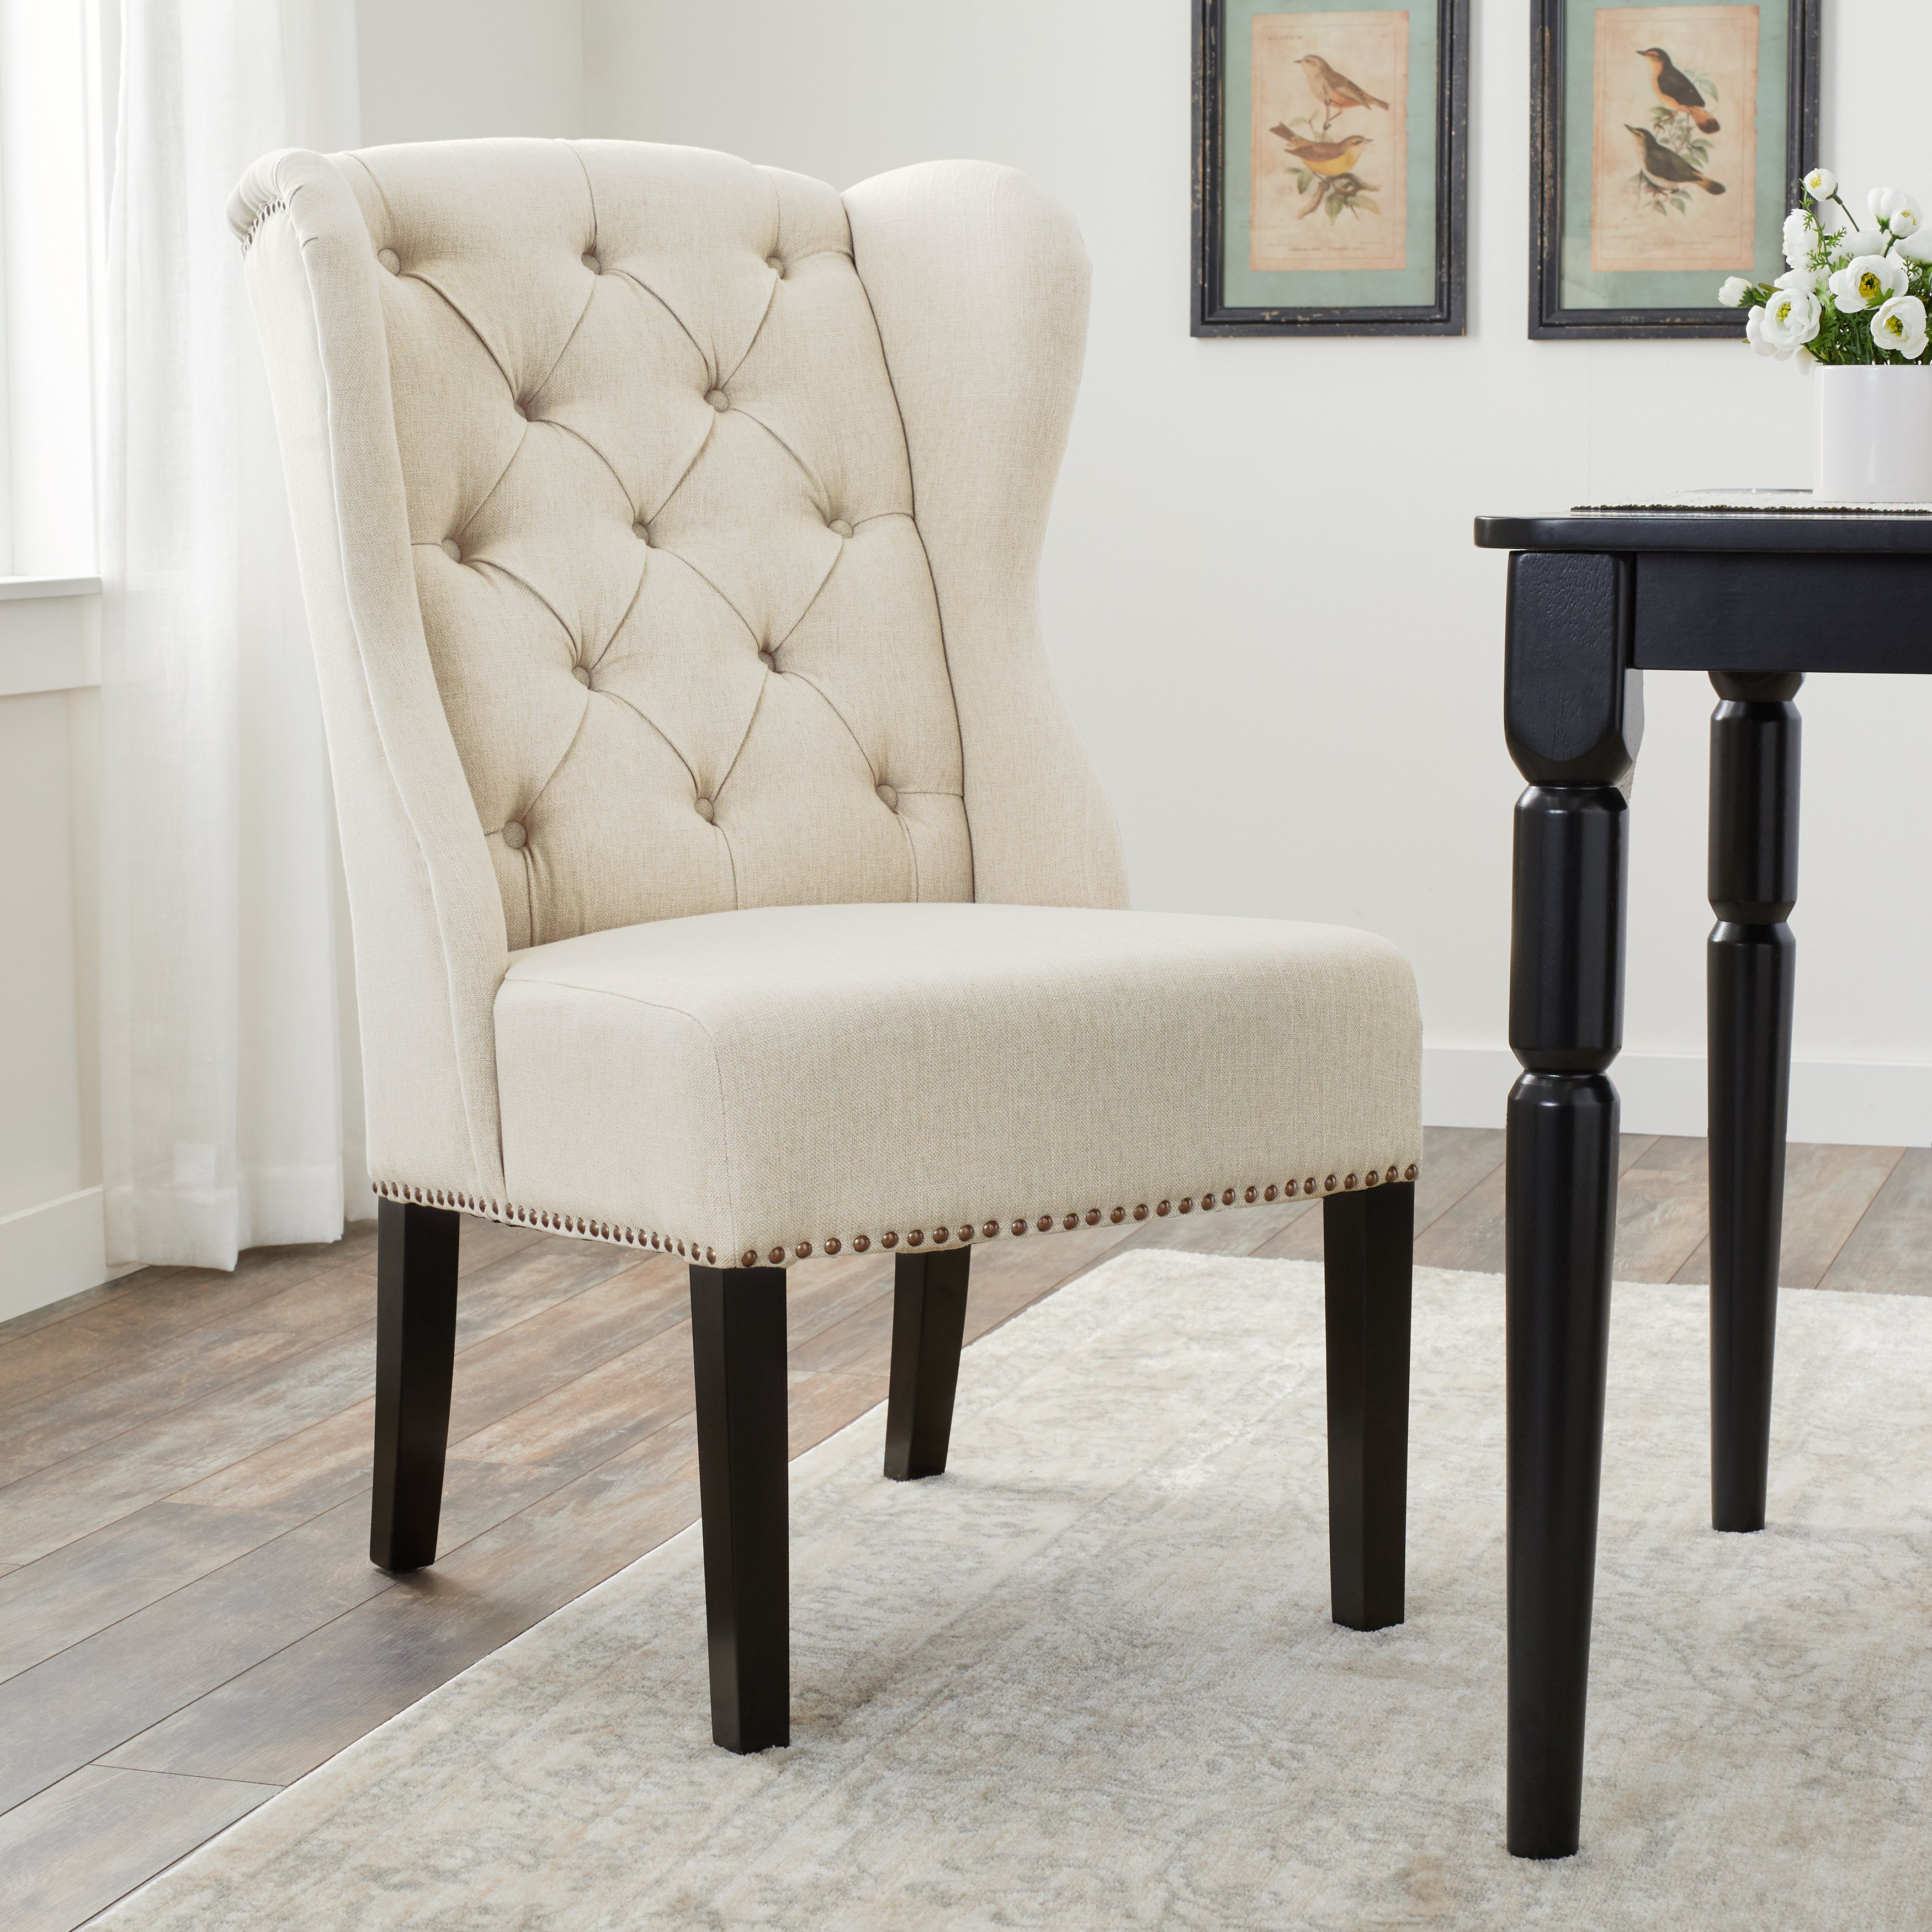 Shop Abbyson Sierra Tufted Cream Linen Wingback Dining Chair – Free With Regard To Sierra Foam Ii Oversized Sofa Chairs (View 10 of 25)